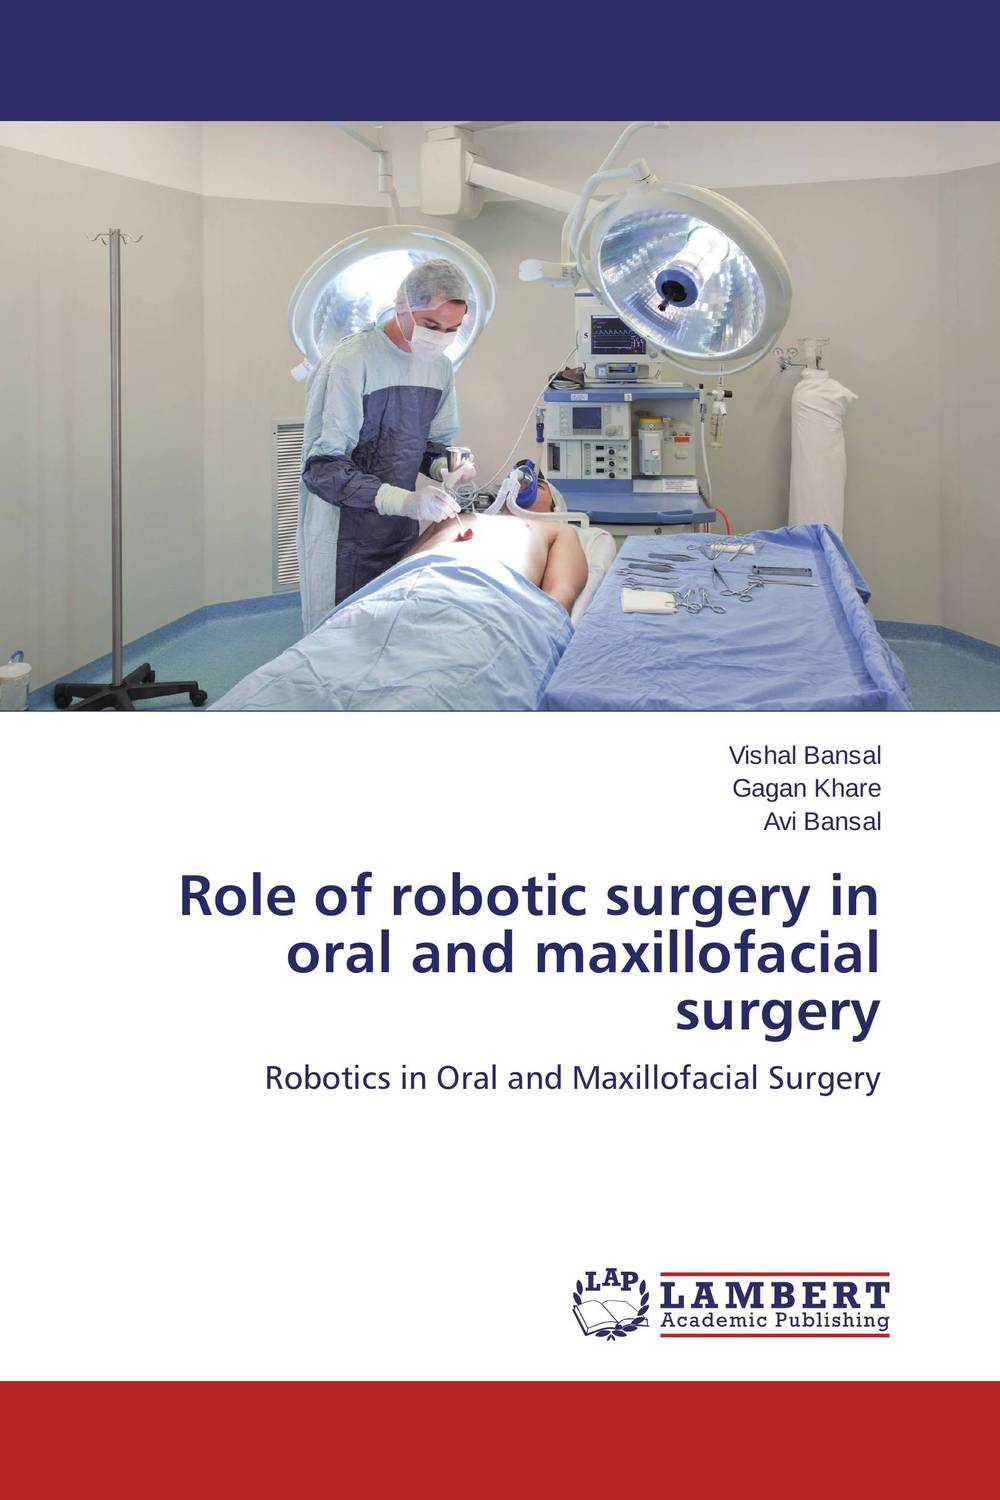 Role of robotic surgery in oral and maxillofacial surgery uj moore principles of oral and maxillofacial surgery 6e